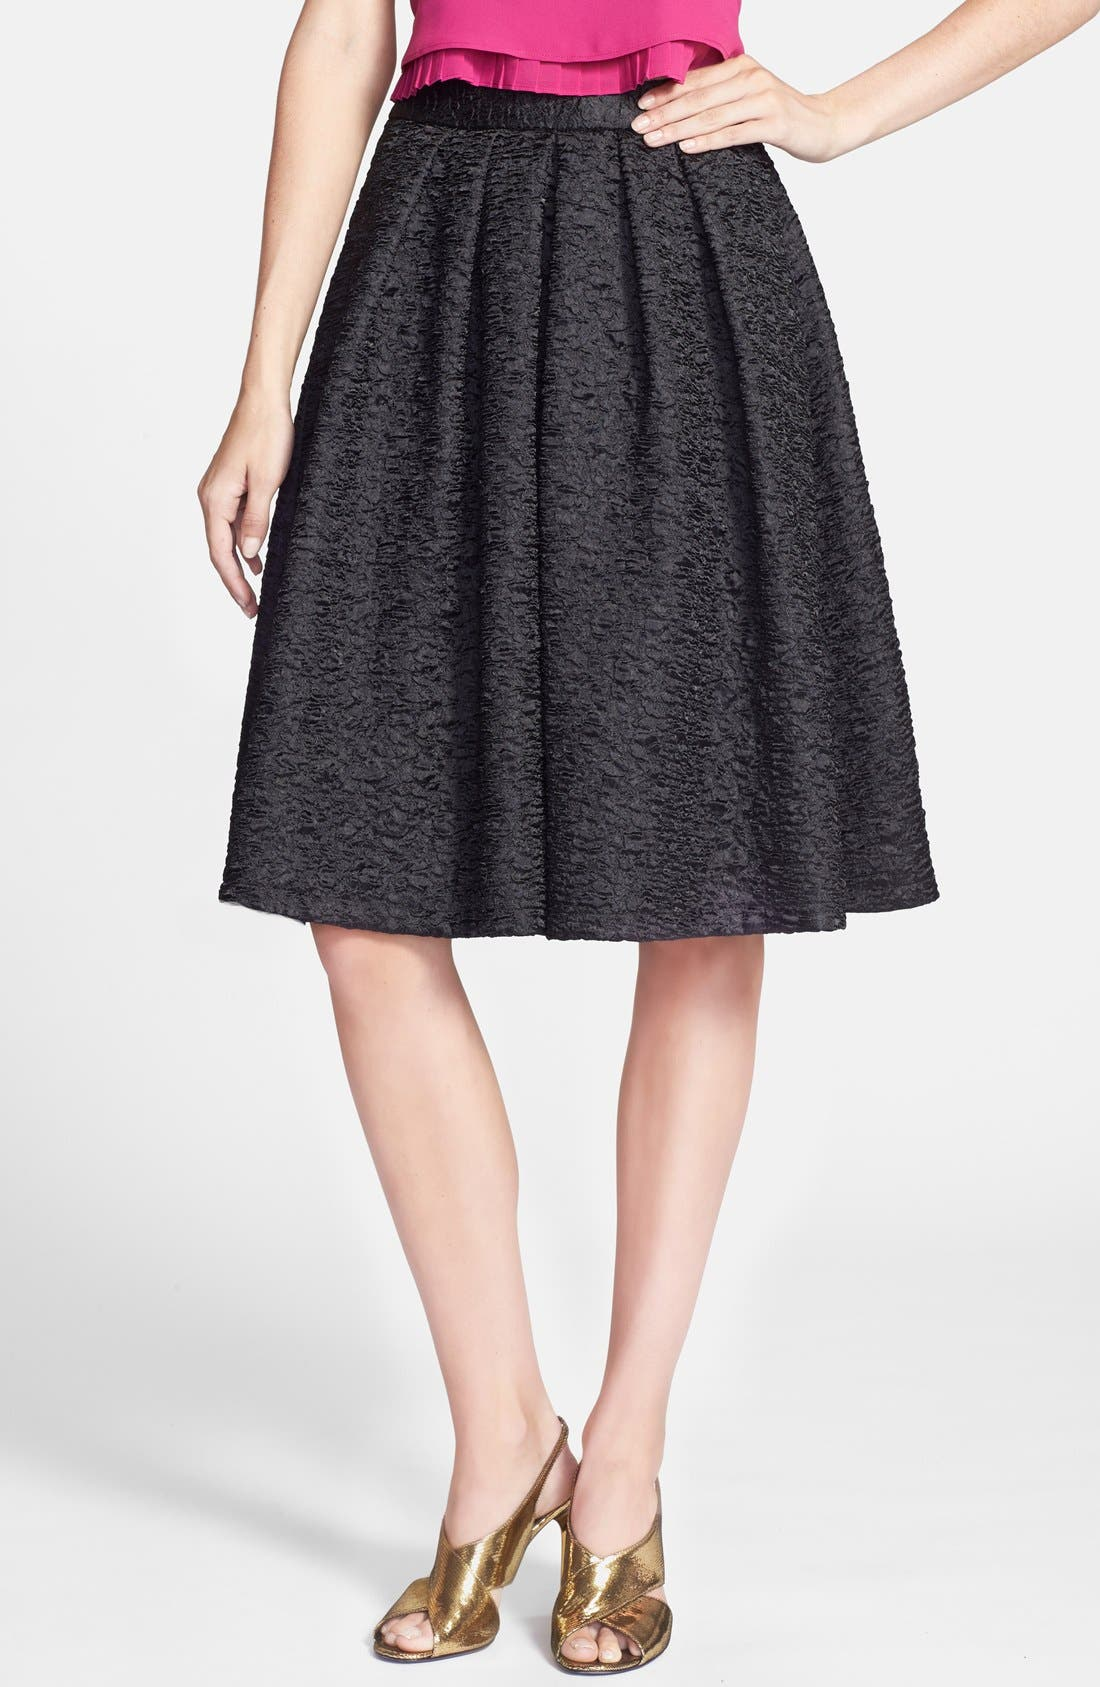 ASTR THE LABEL ASTR Textured Pleat Skirt, Main, color, 001